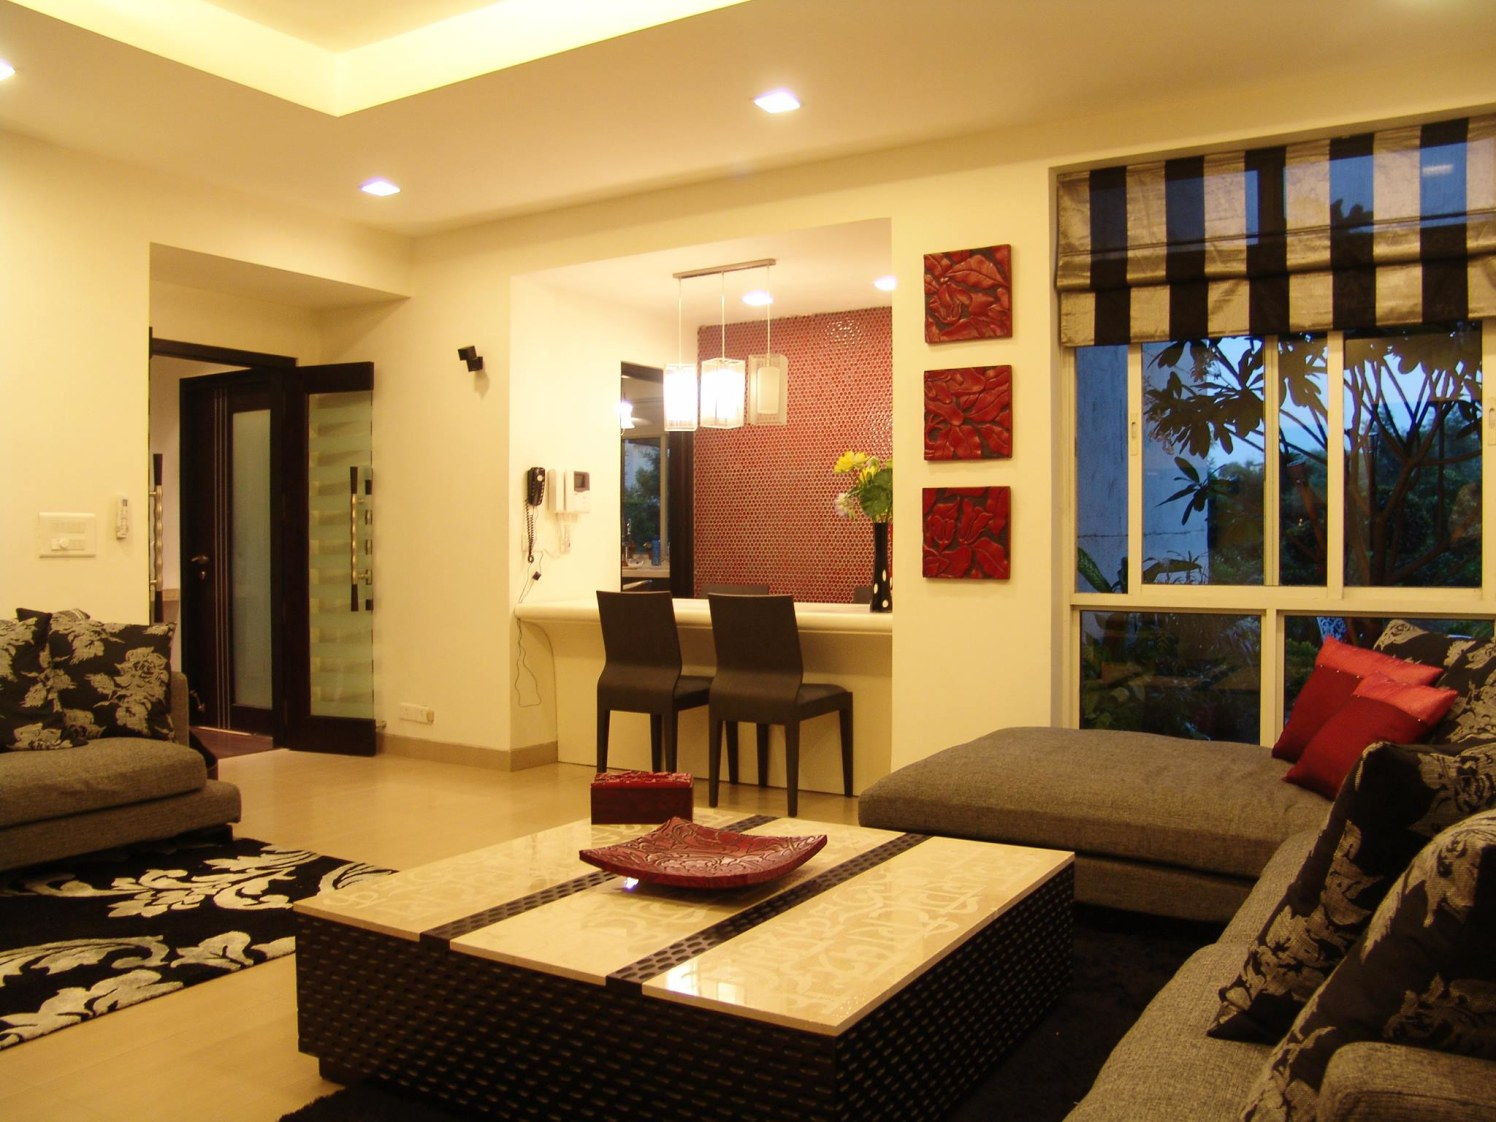 Buff Shaded Living Room With Outdoor View by Shishu Yadava Living-room Contemporary | Interior Design Photos & Ideas